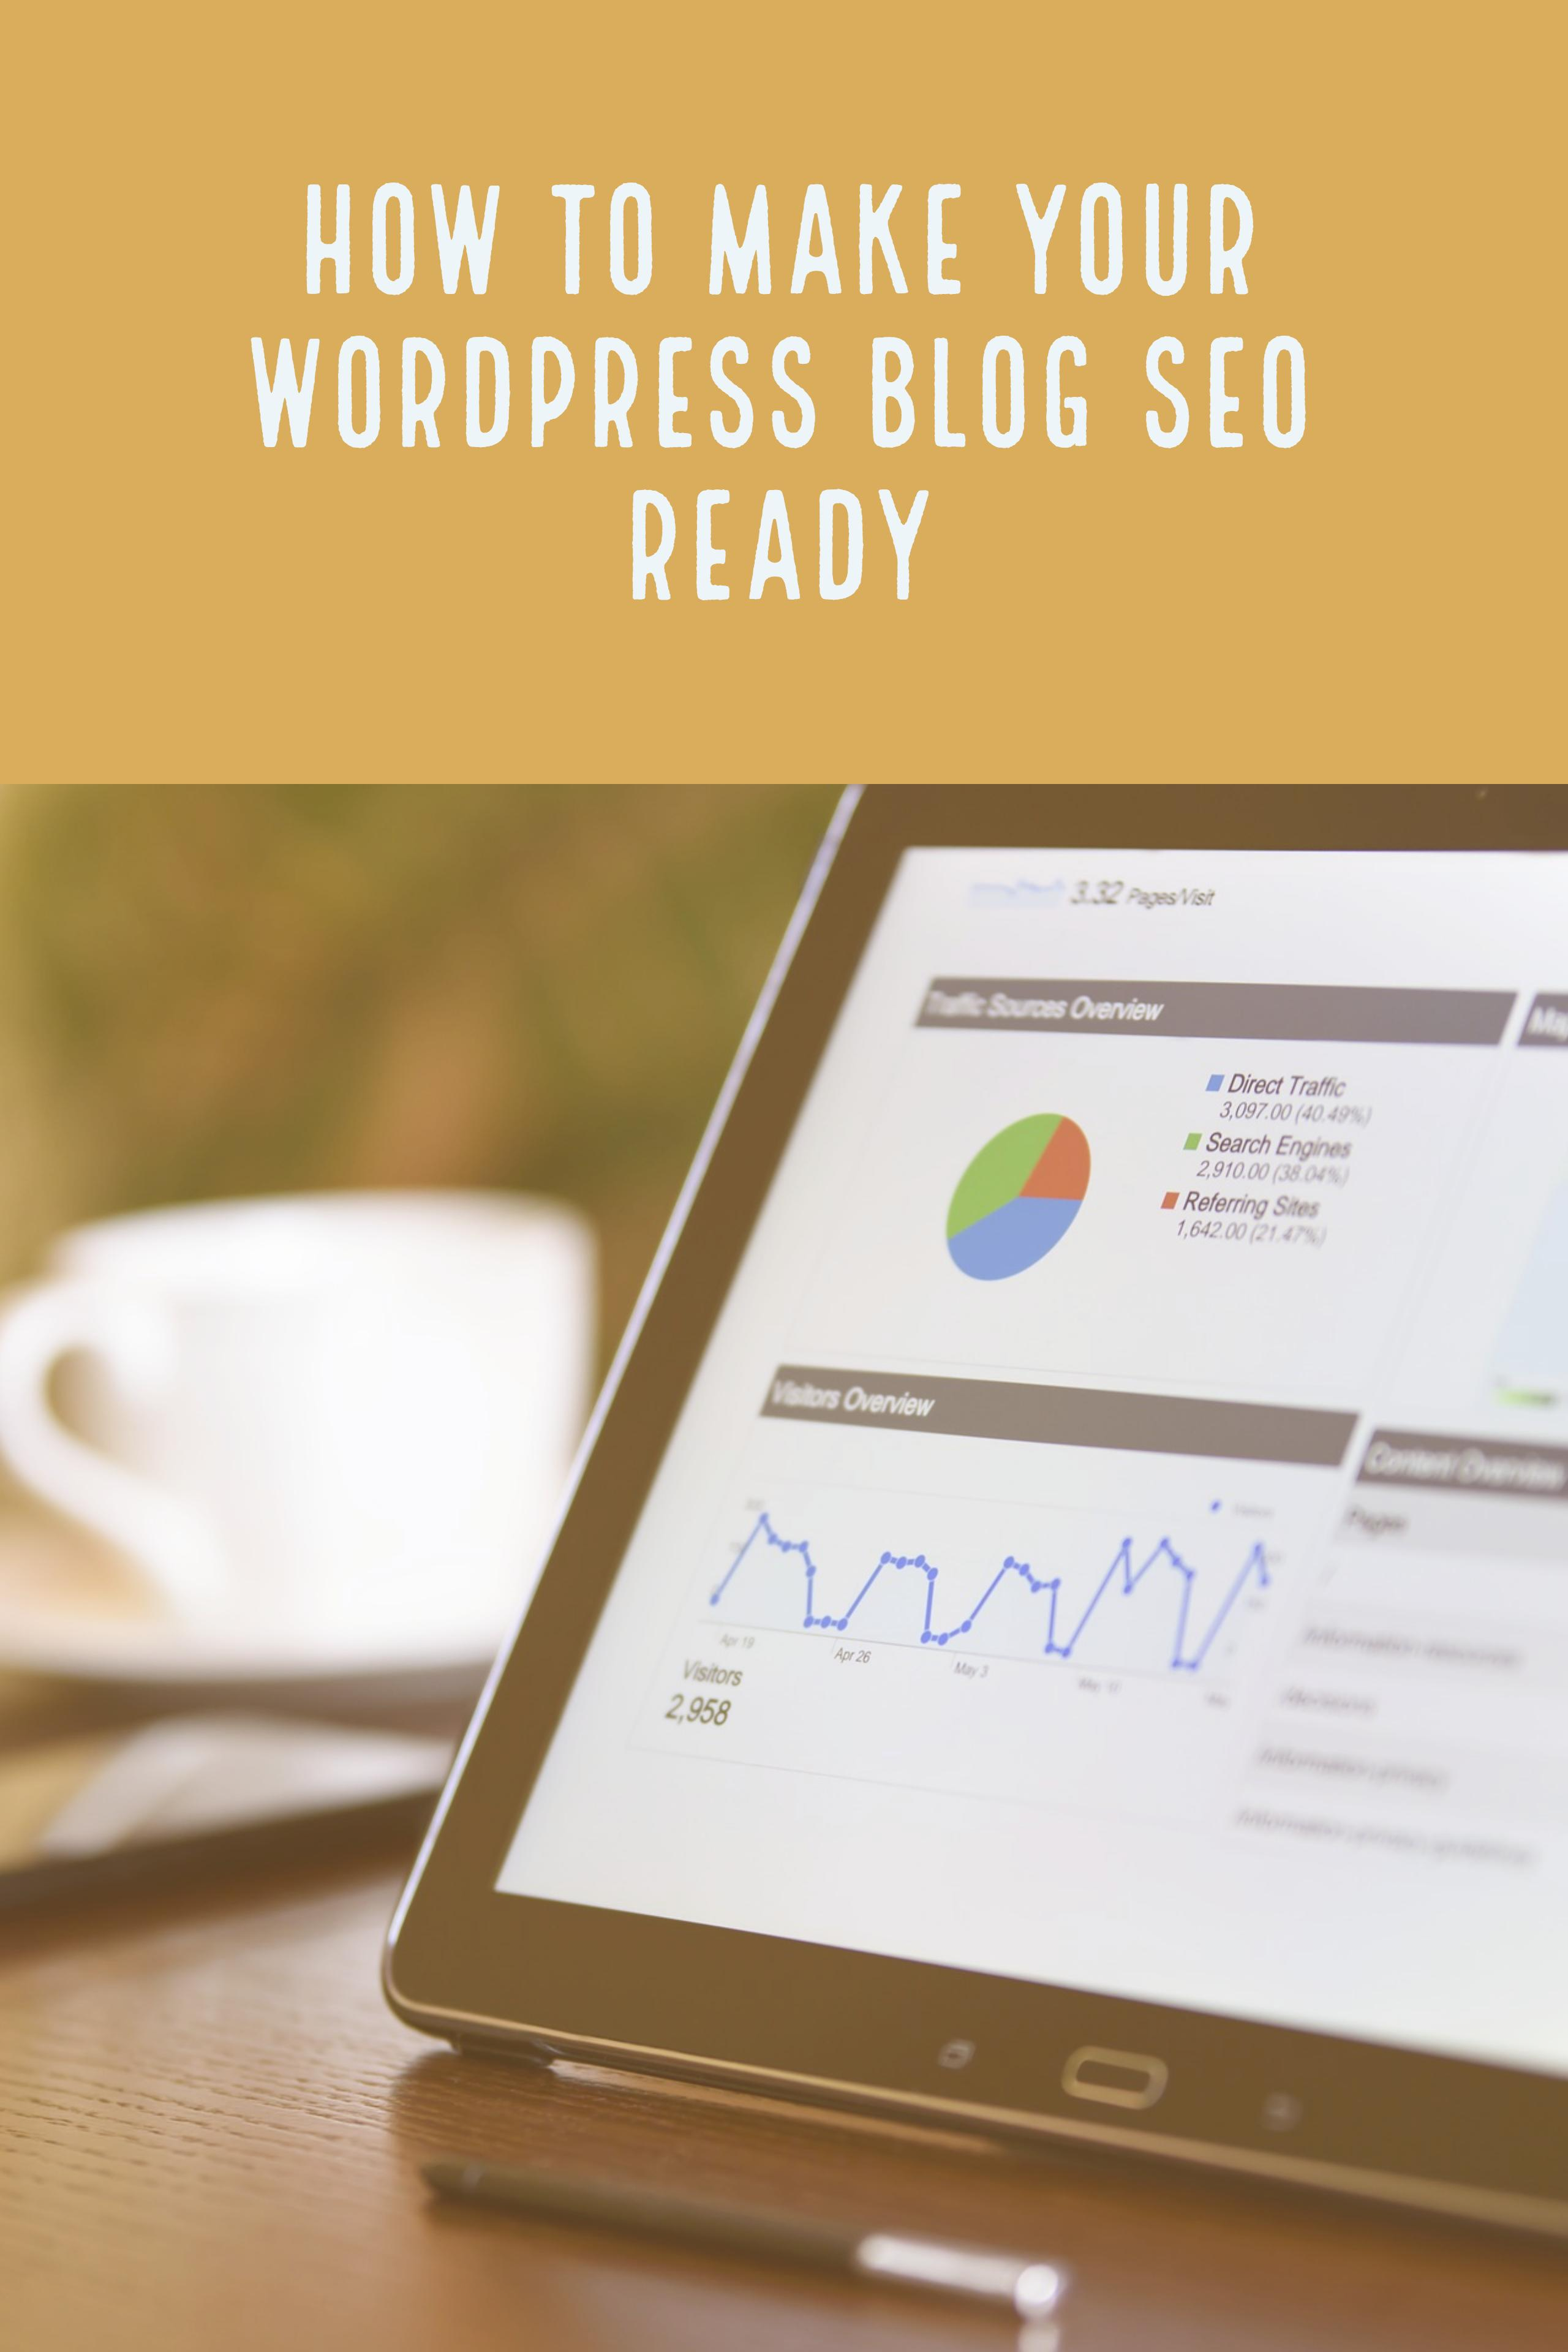 Is your blog really ready for SEO? Sure, you are running WordPress - did you install everything for SEO? Probably not! Here comes your in-depth guide!